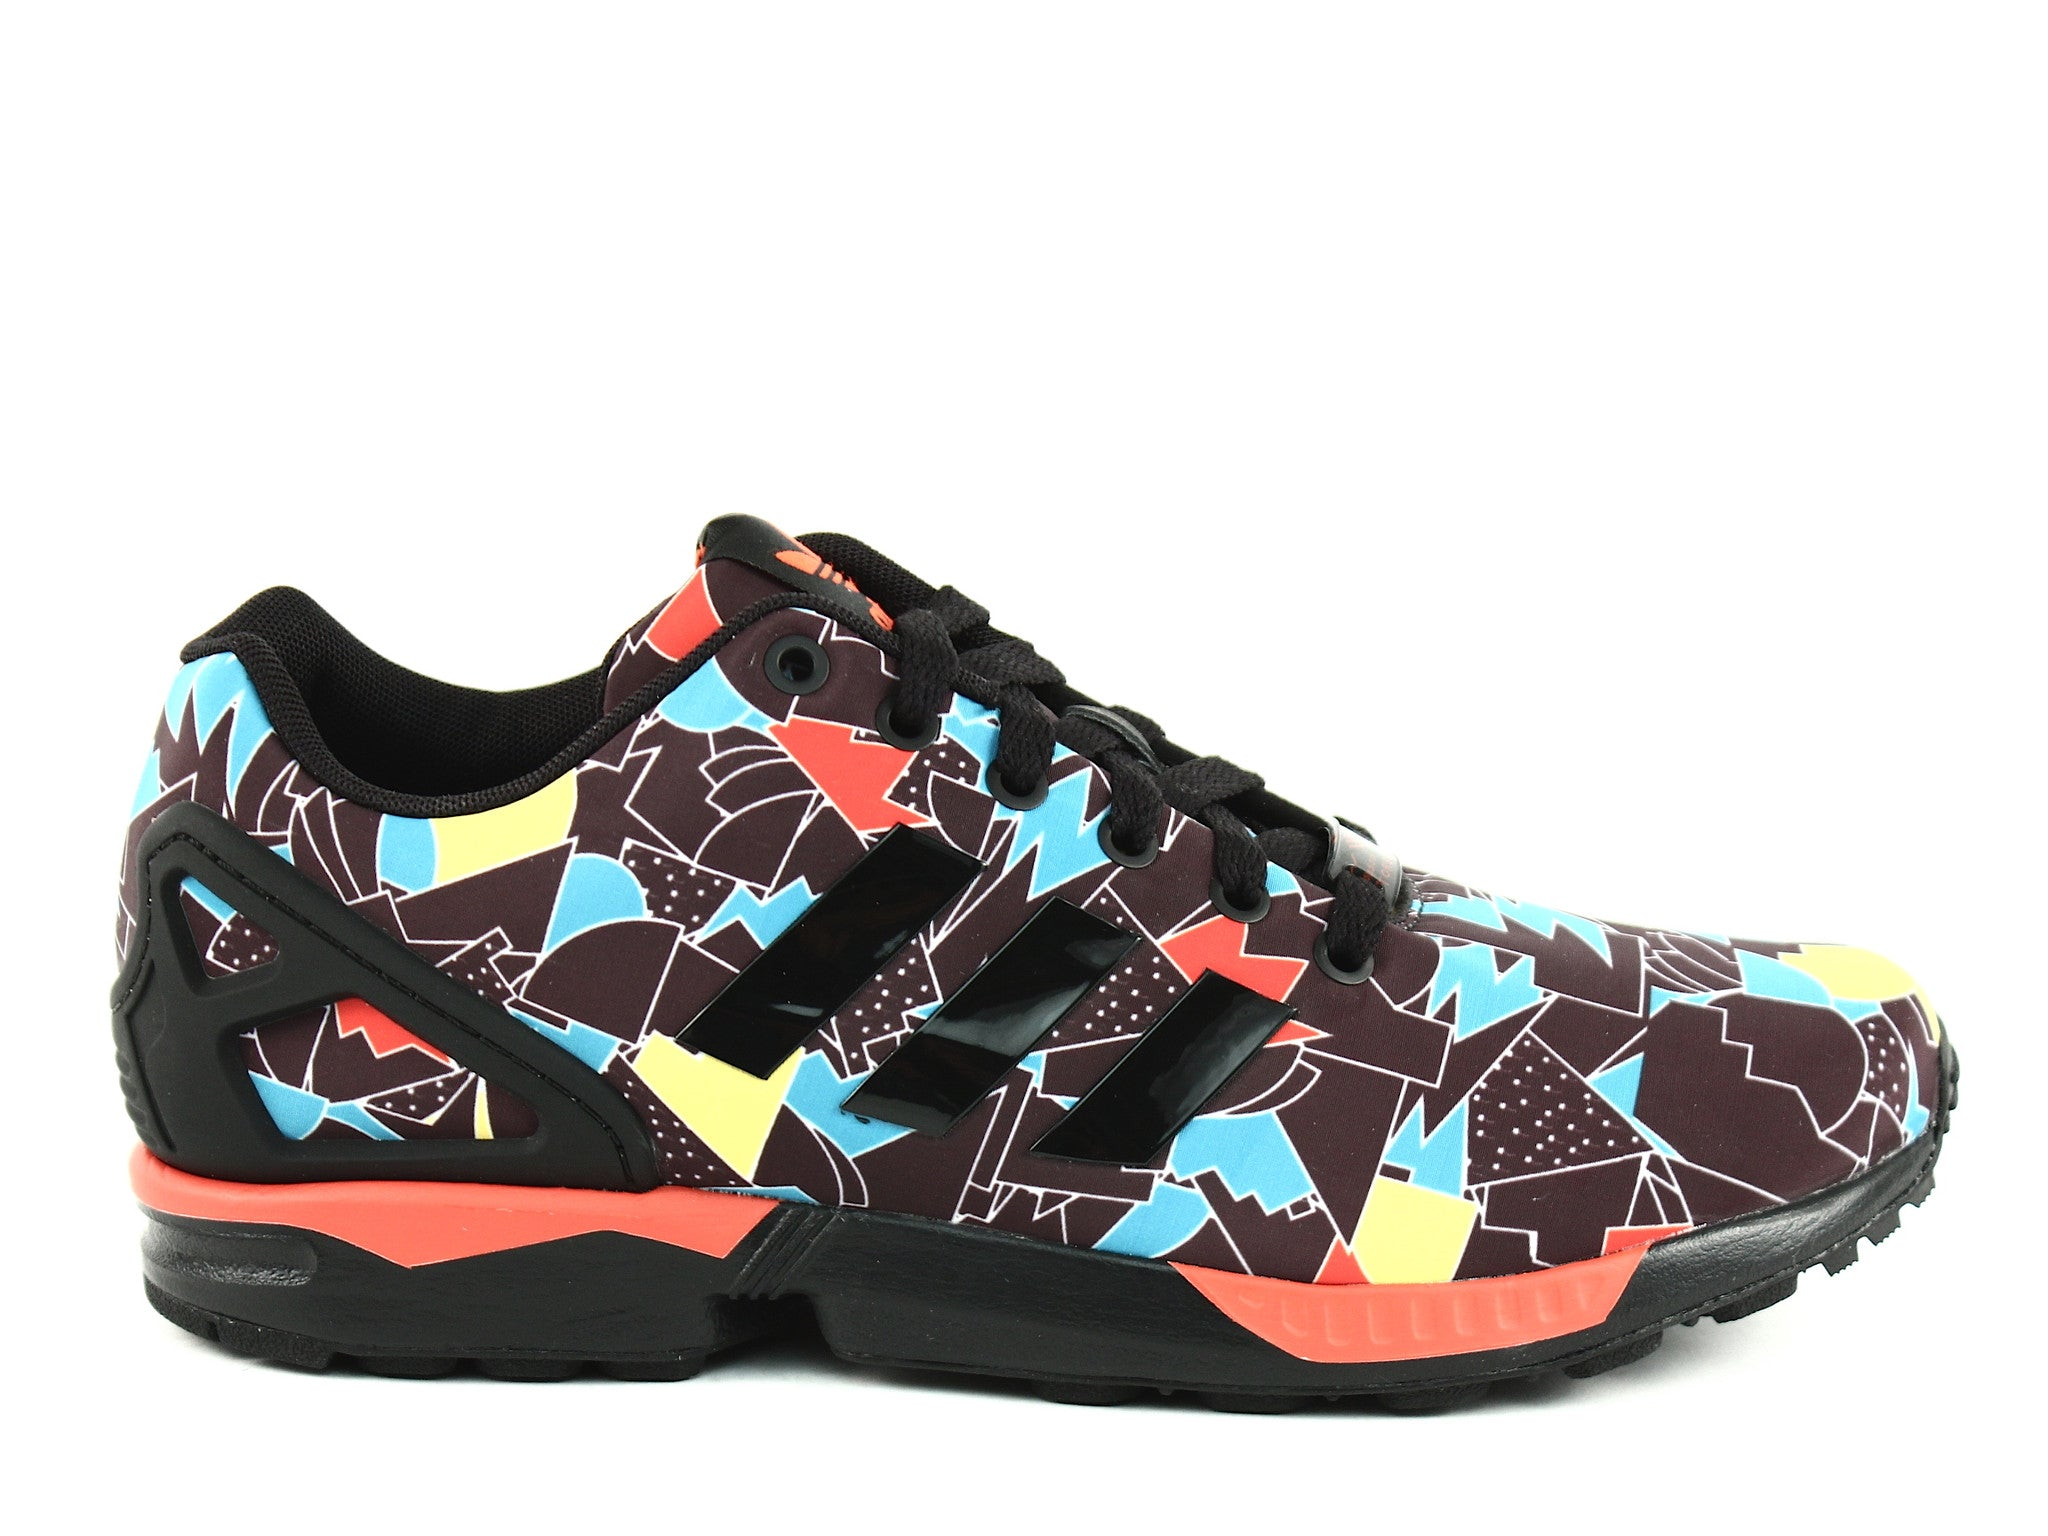 separation shoes a5bca adb9f ... where can i buy adidas zx flux mens athletic shoes sneakers multi color  01bc1 73e0d